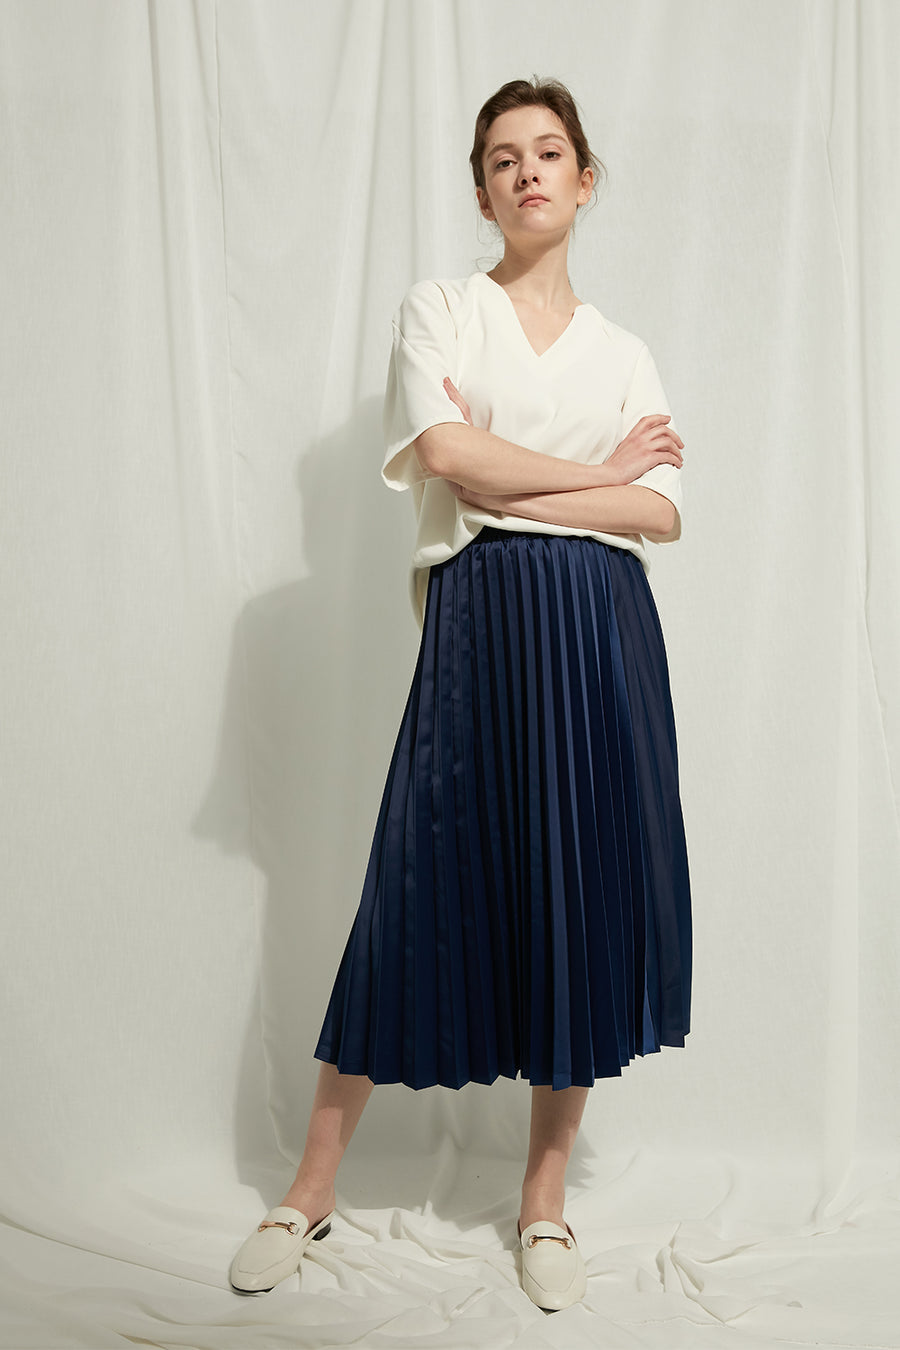 Sarah Jane - Pleated Skirt With Elastic Waist - Zelle Studio